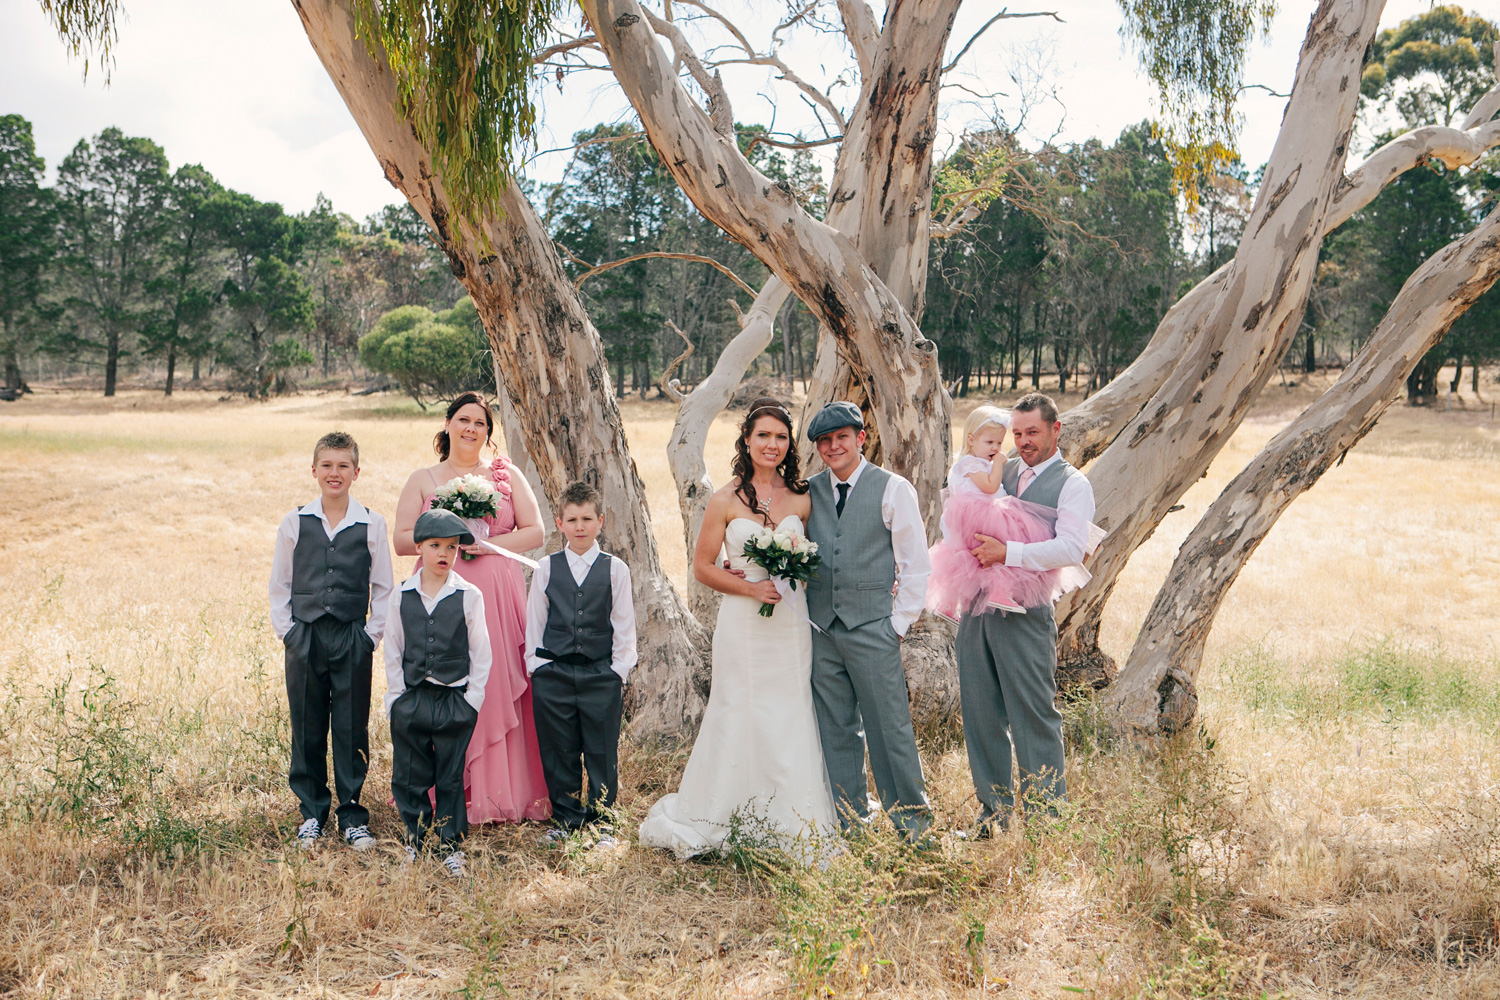 Jane_Chris_Vintage-Rustic-Wedding_035